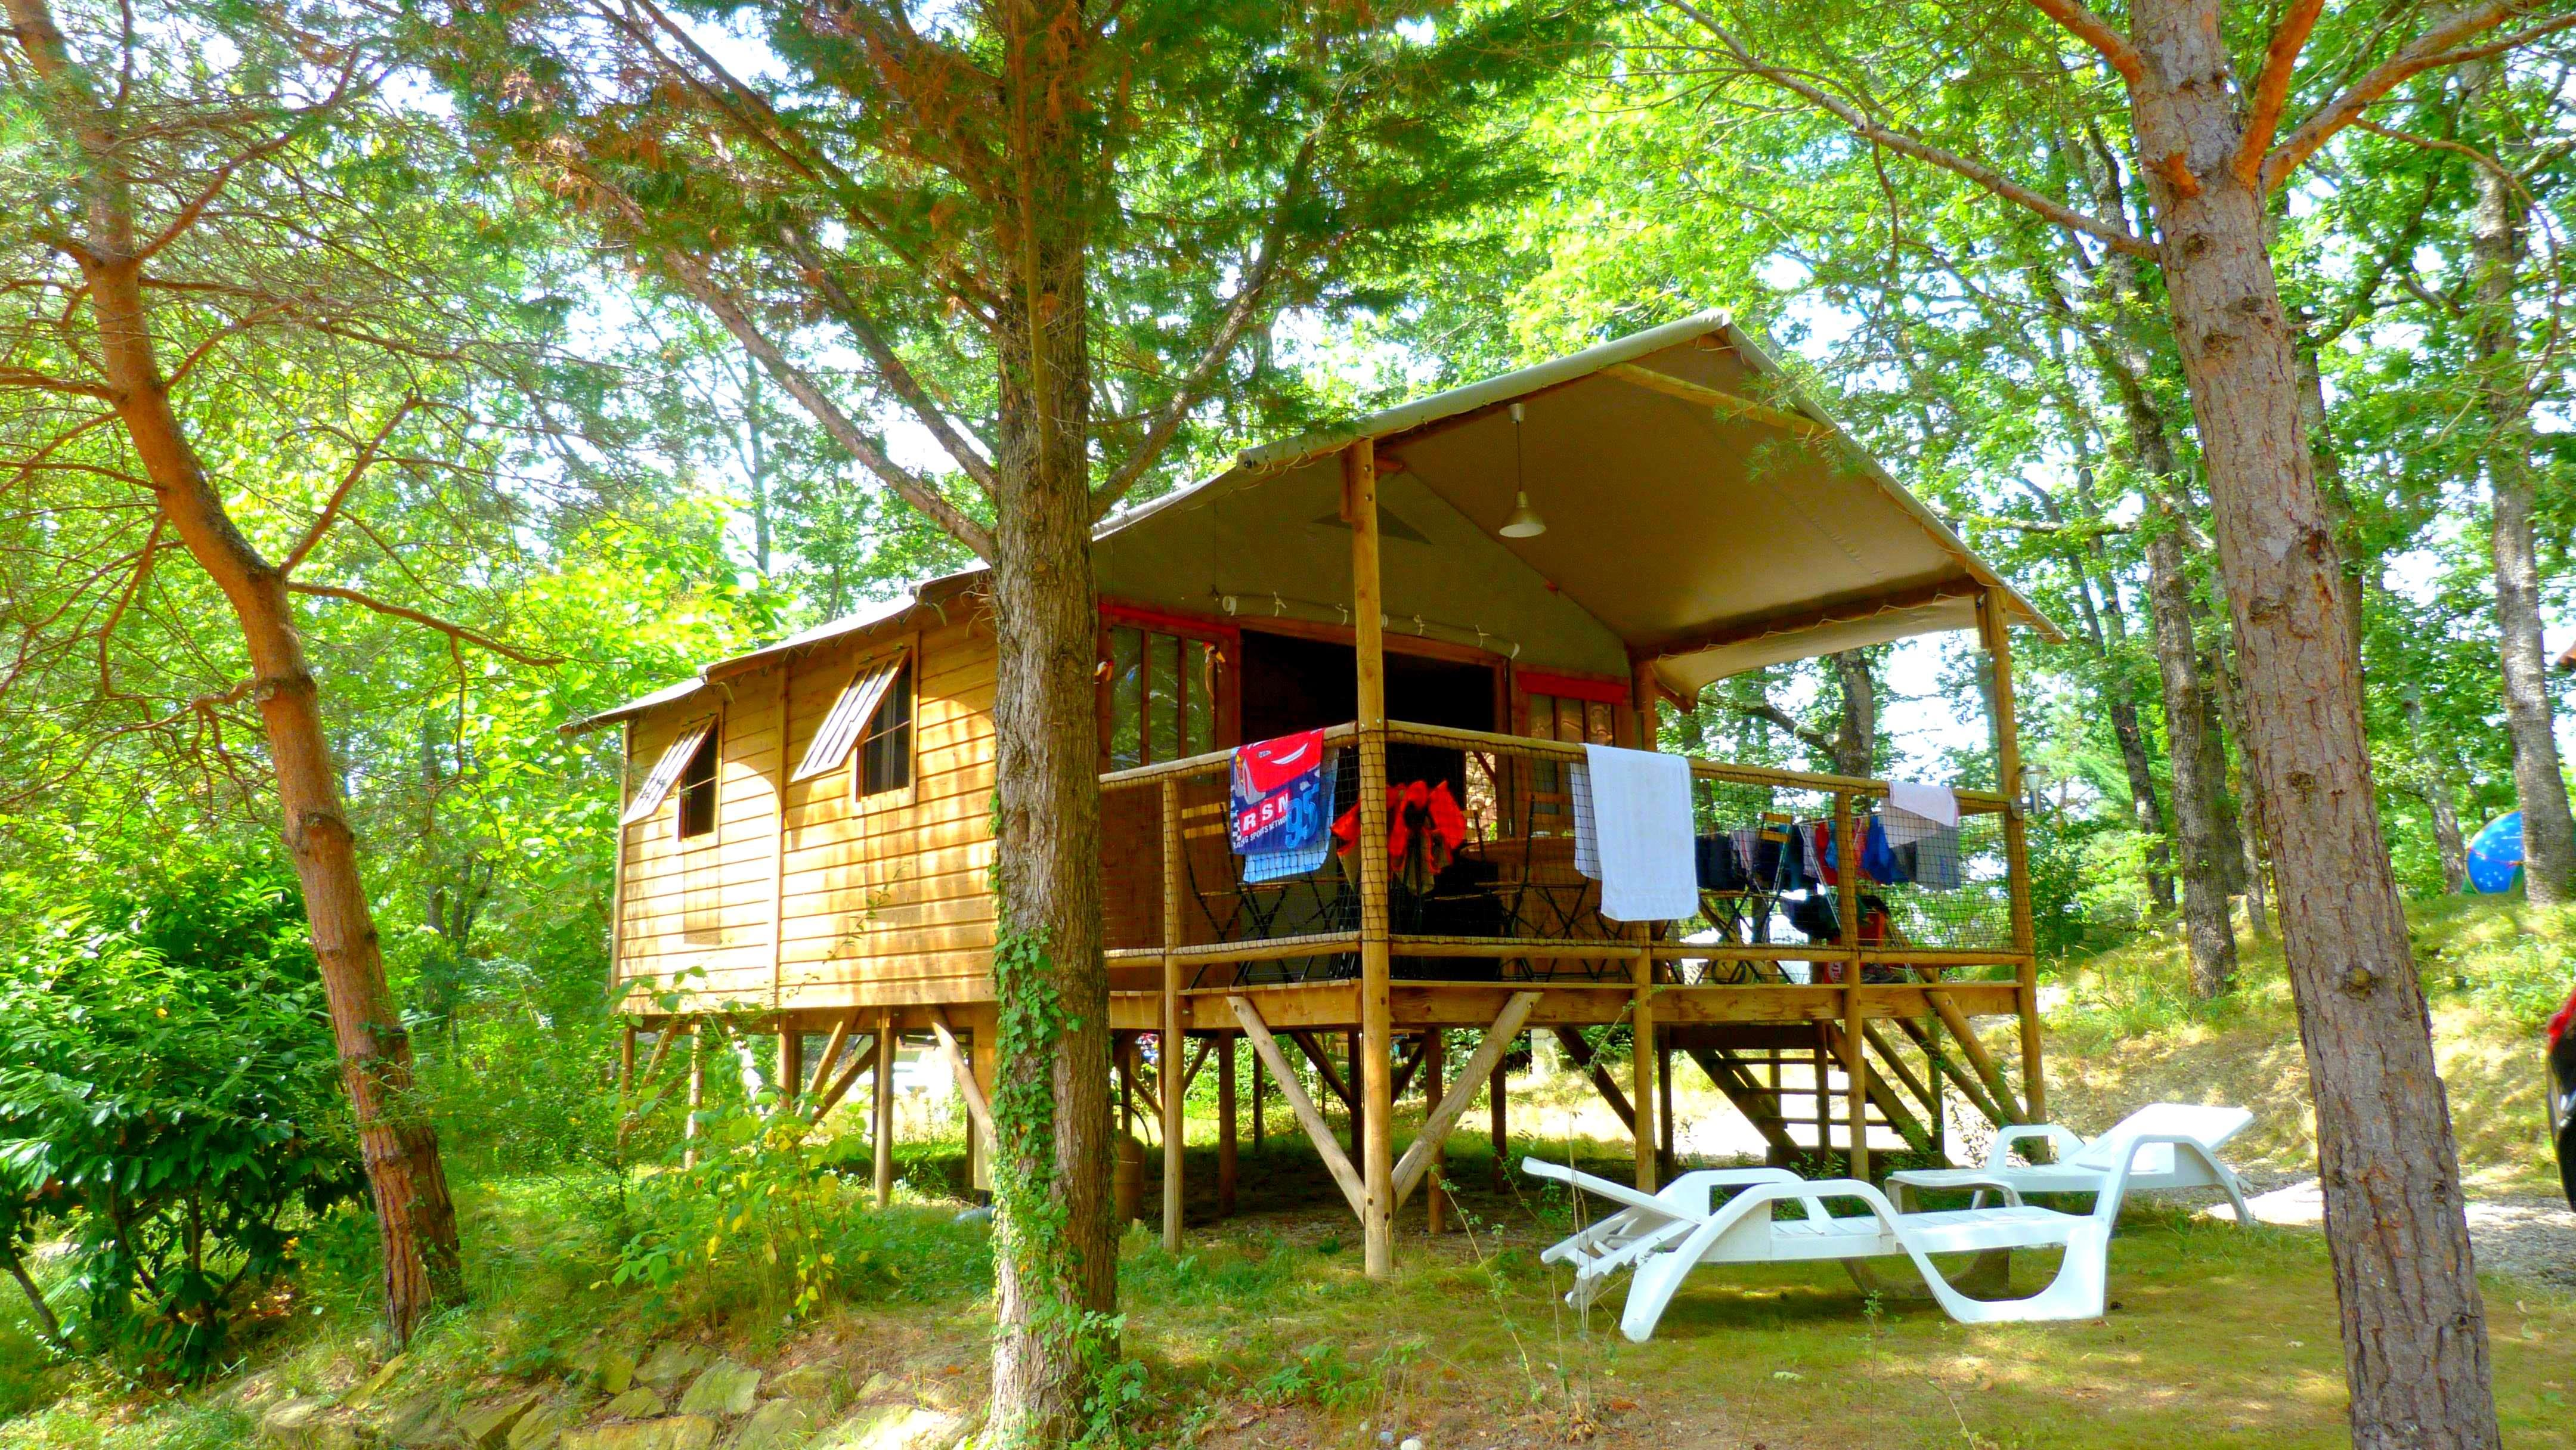 Wooden hut Lodge érable+ 35 m² with private facilities